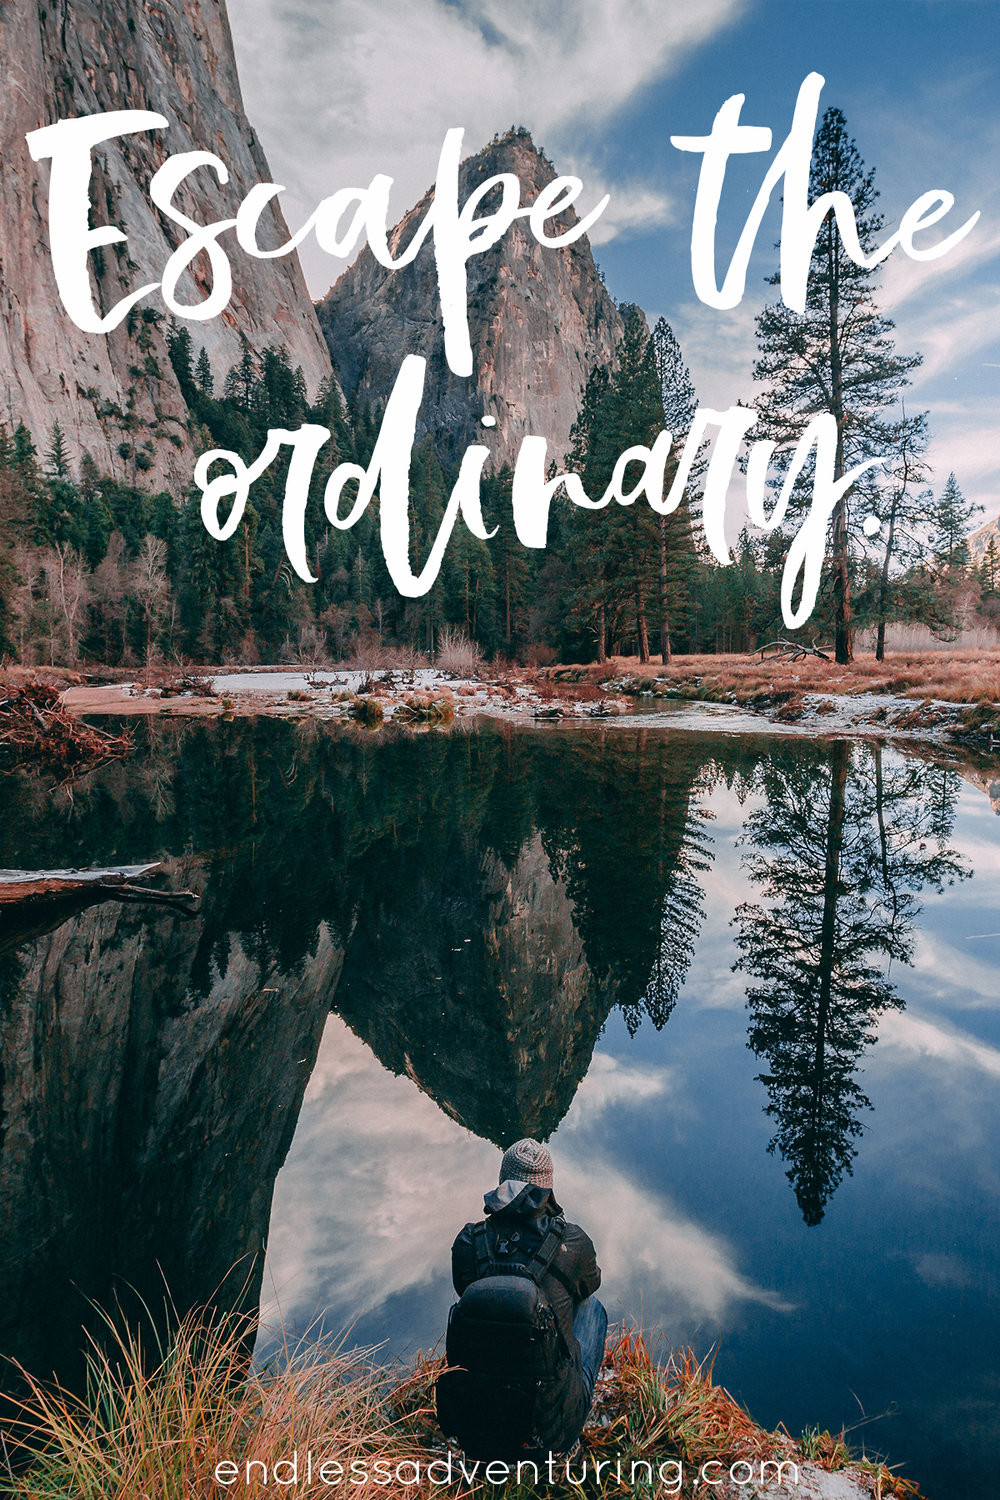 Adventure Quote - Escape The Ordinary